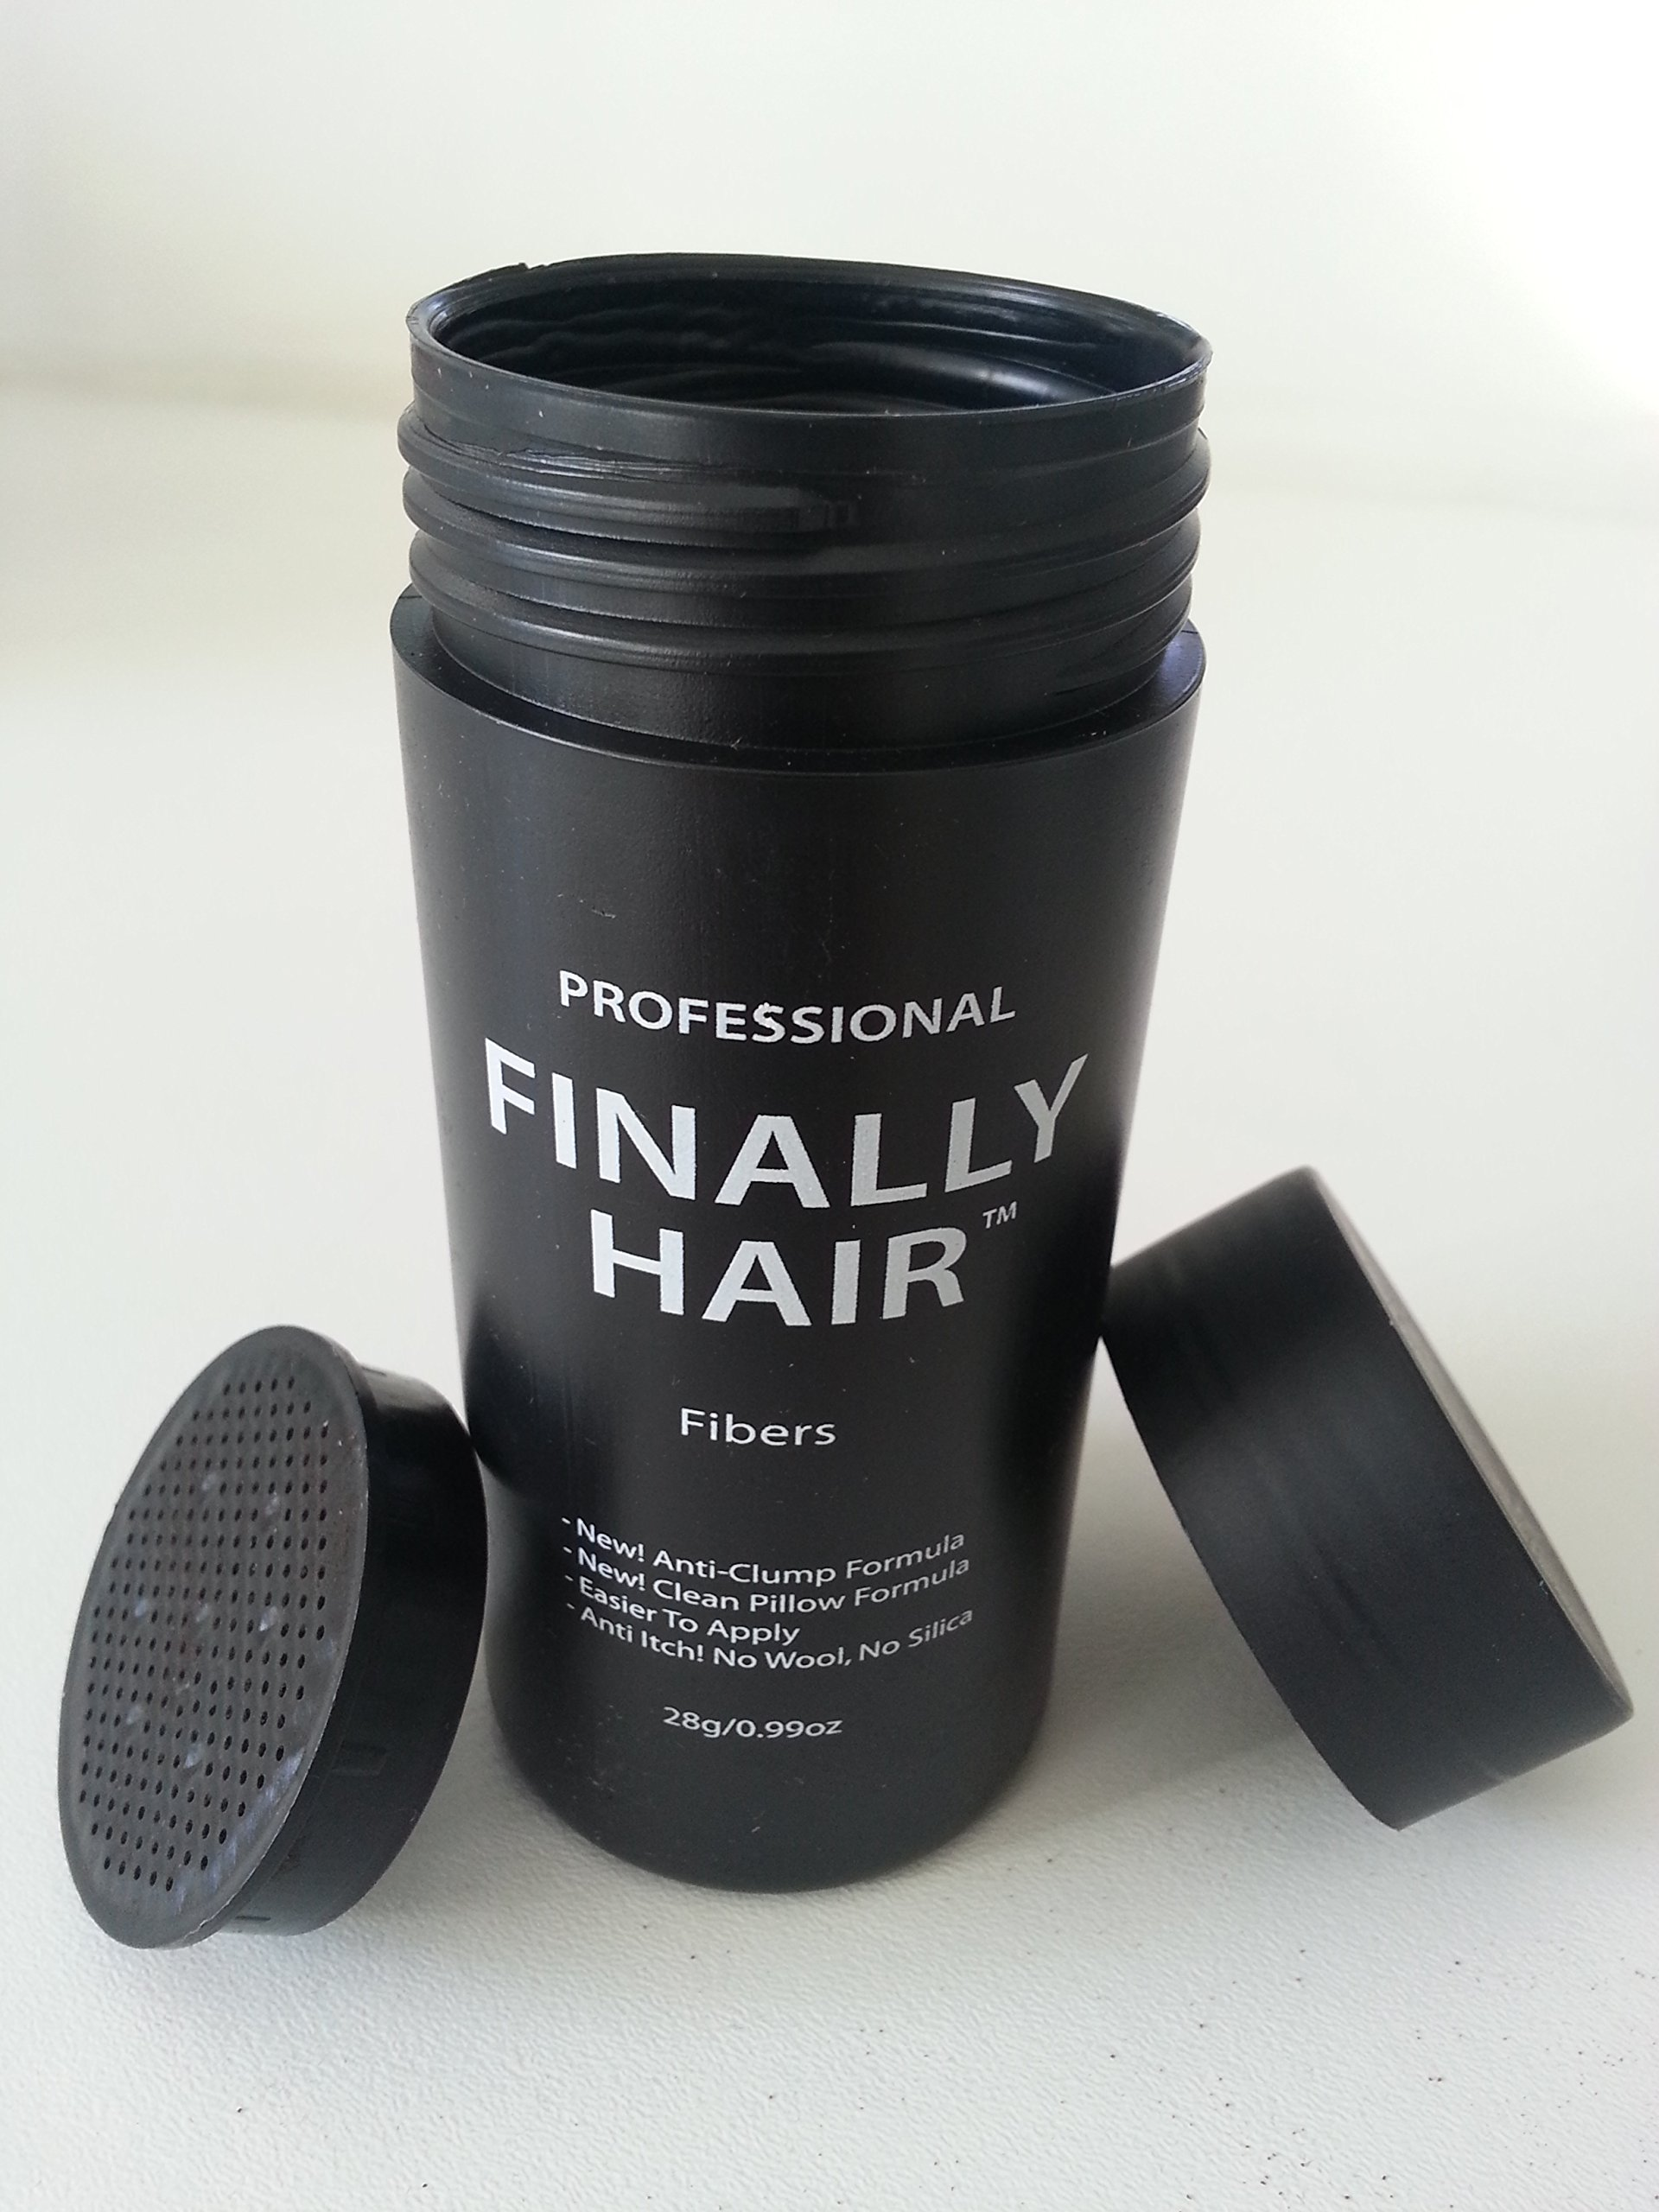 Hair Building Fibers 200 Grams 7 Oz. With Bottle By Finally Hair 50g4 (Light Salt and Pepper (light brown & grey special formula)) by Finally Hair (Image #7)